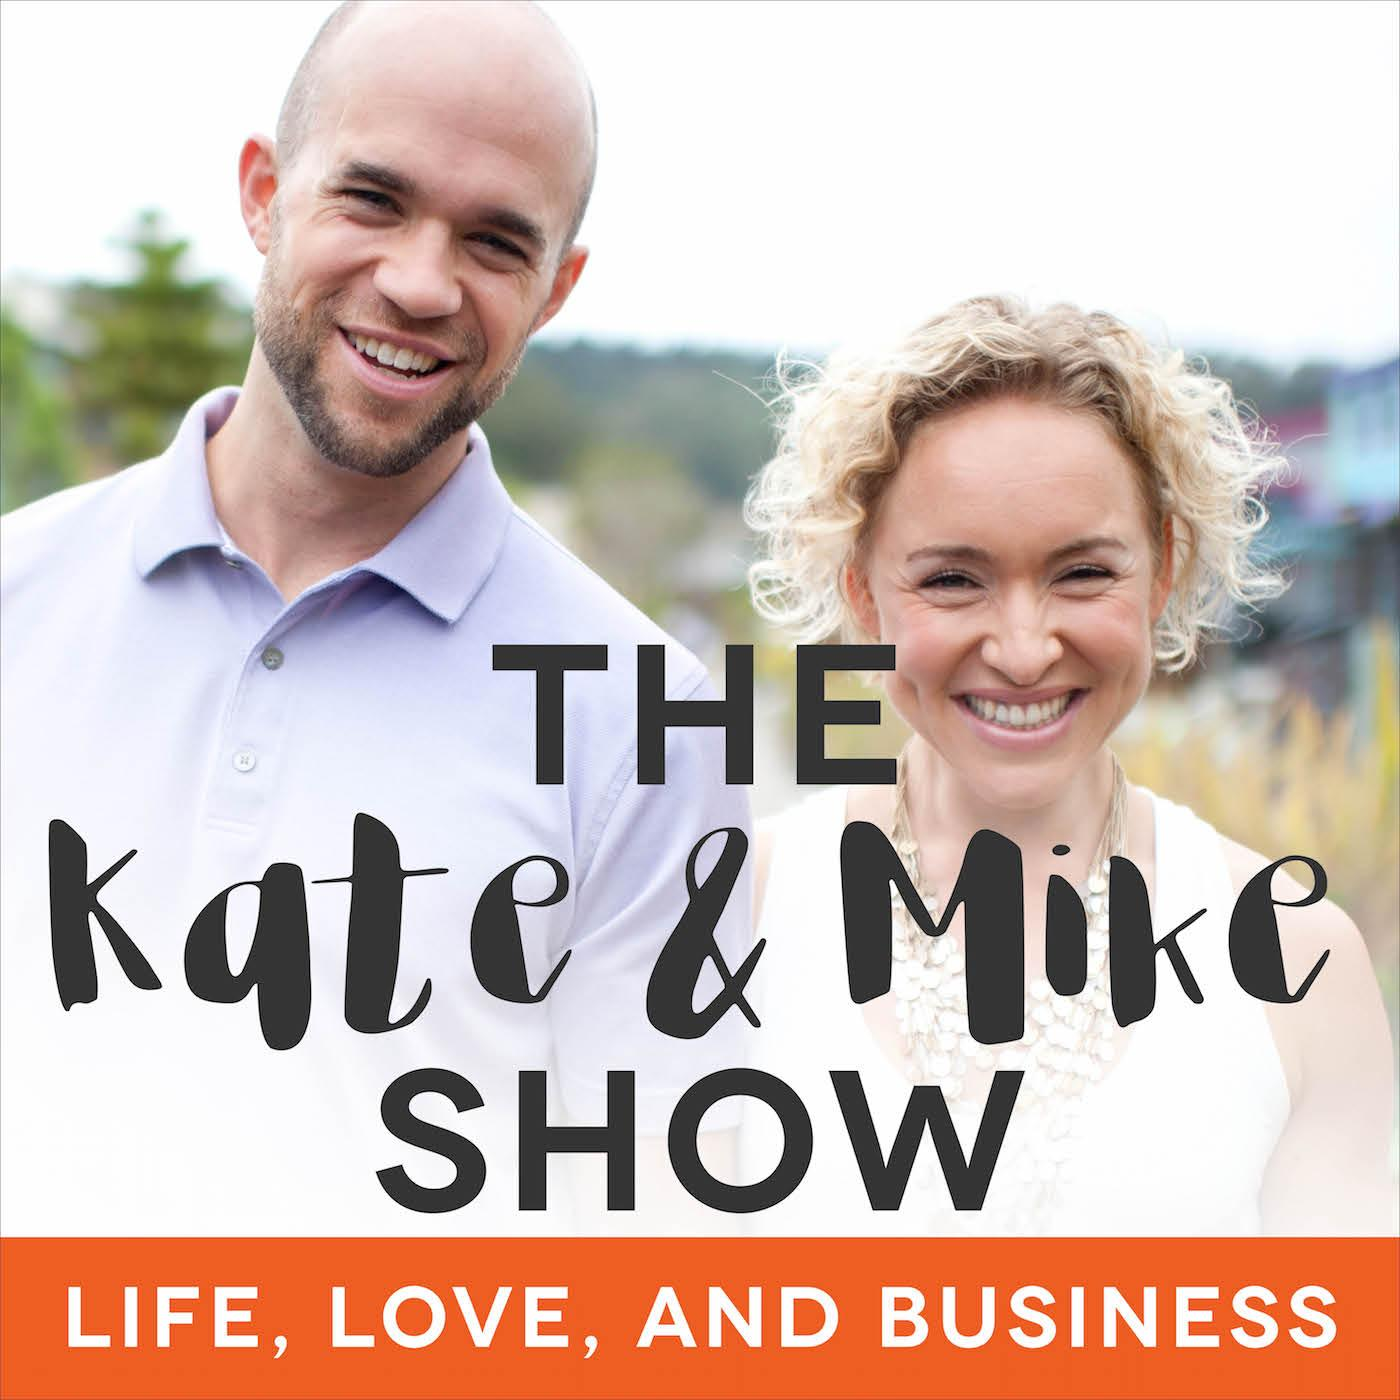 Episode 202: Top Lessons from 10 Years in Business Together